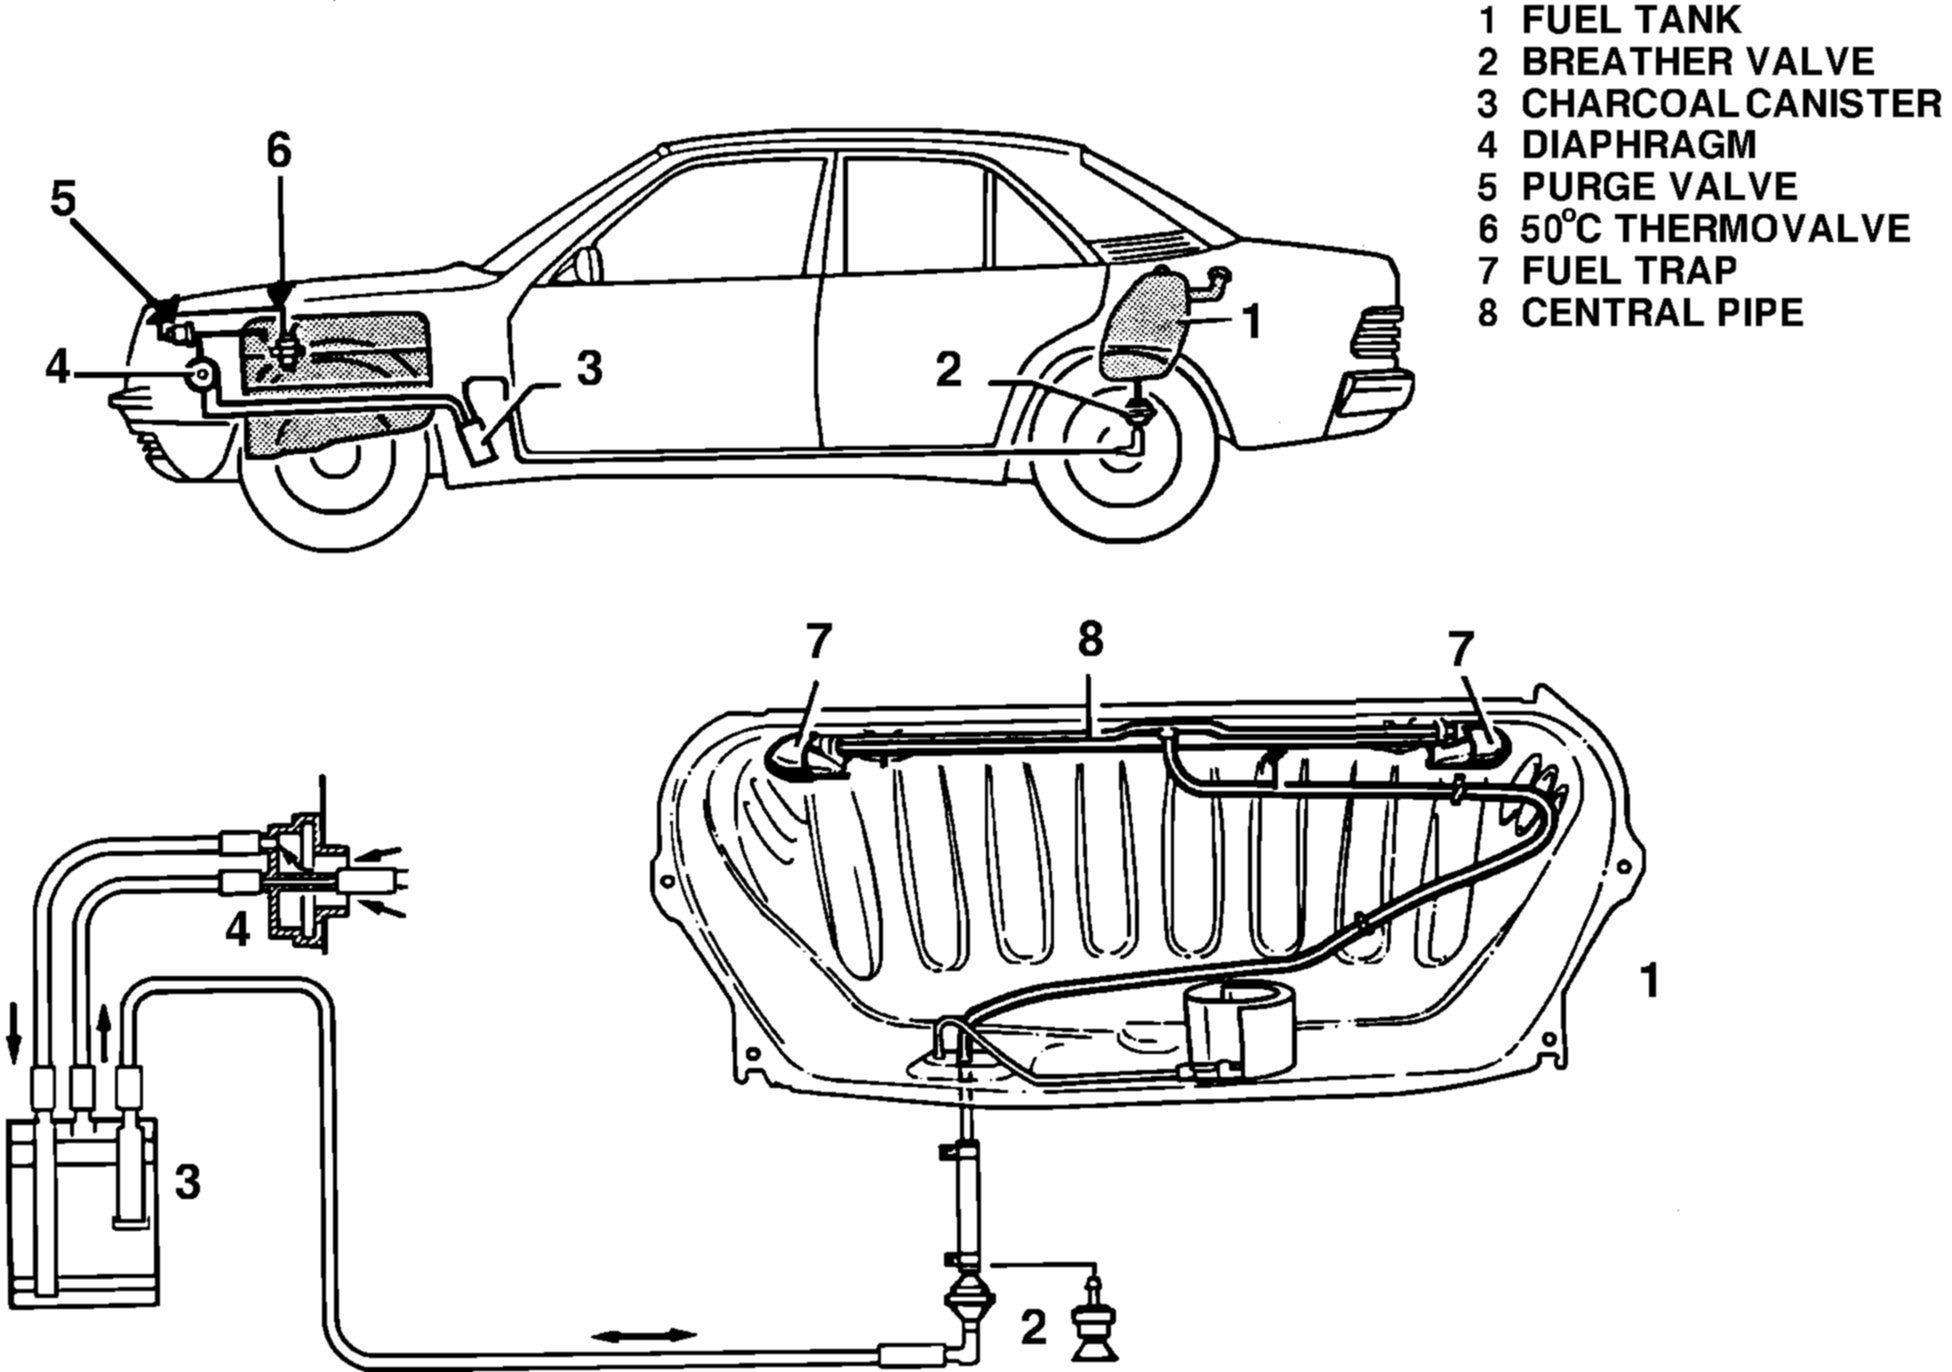 Mercedes Benz 300e Fuel Filter Location Wiring Diagram Libraries On 2009 Toyota Camry Tank Vent Valve Sedan Petrol W124 89 Model